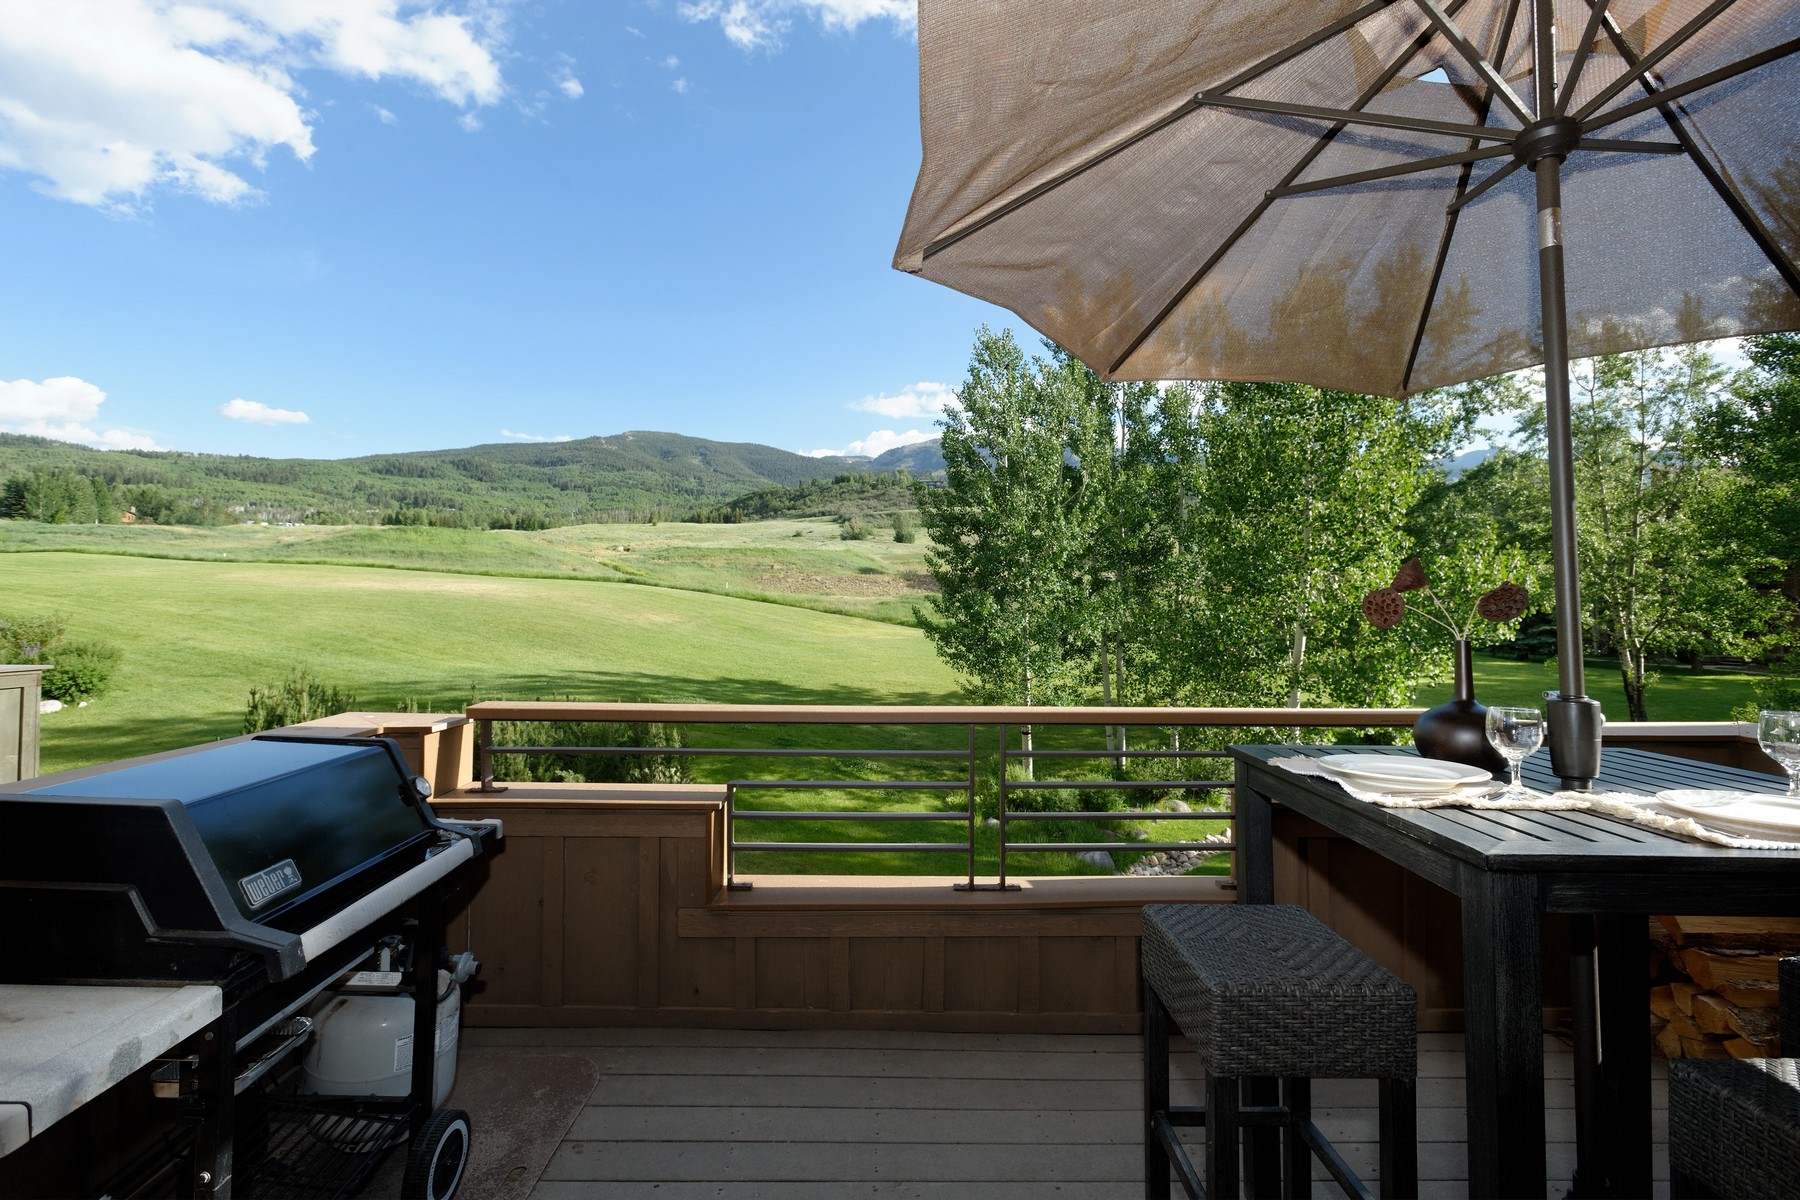 Copropriété pour l Vente à Best Golf and Ski Location 150 Snowmass Club Circle Unit # 1521 Snowmass Village, Colorado, 81615 États-Unis